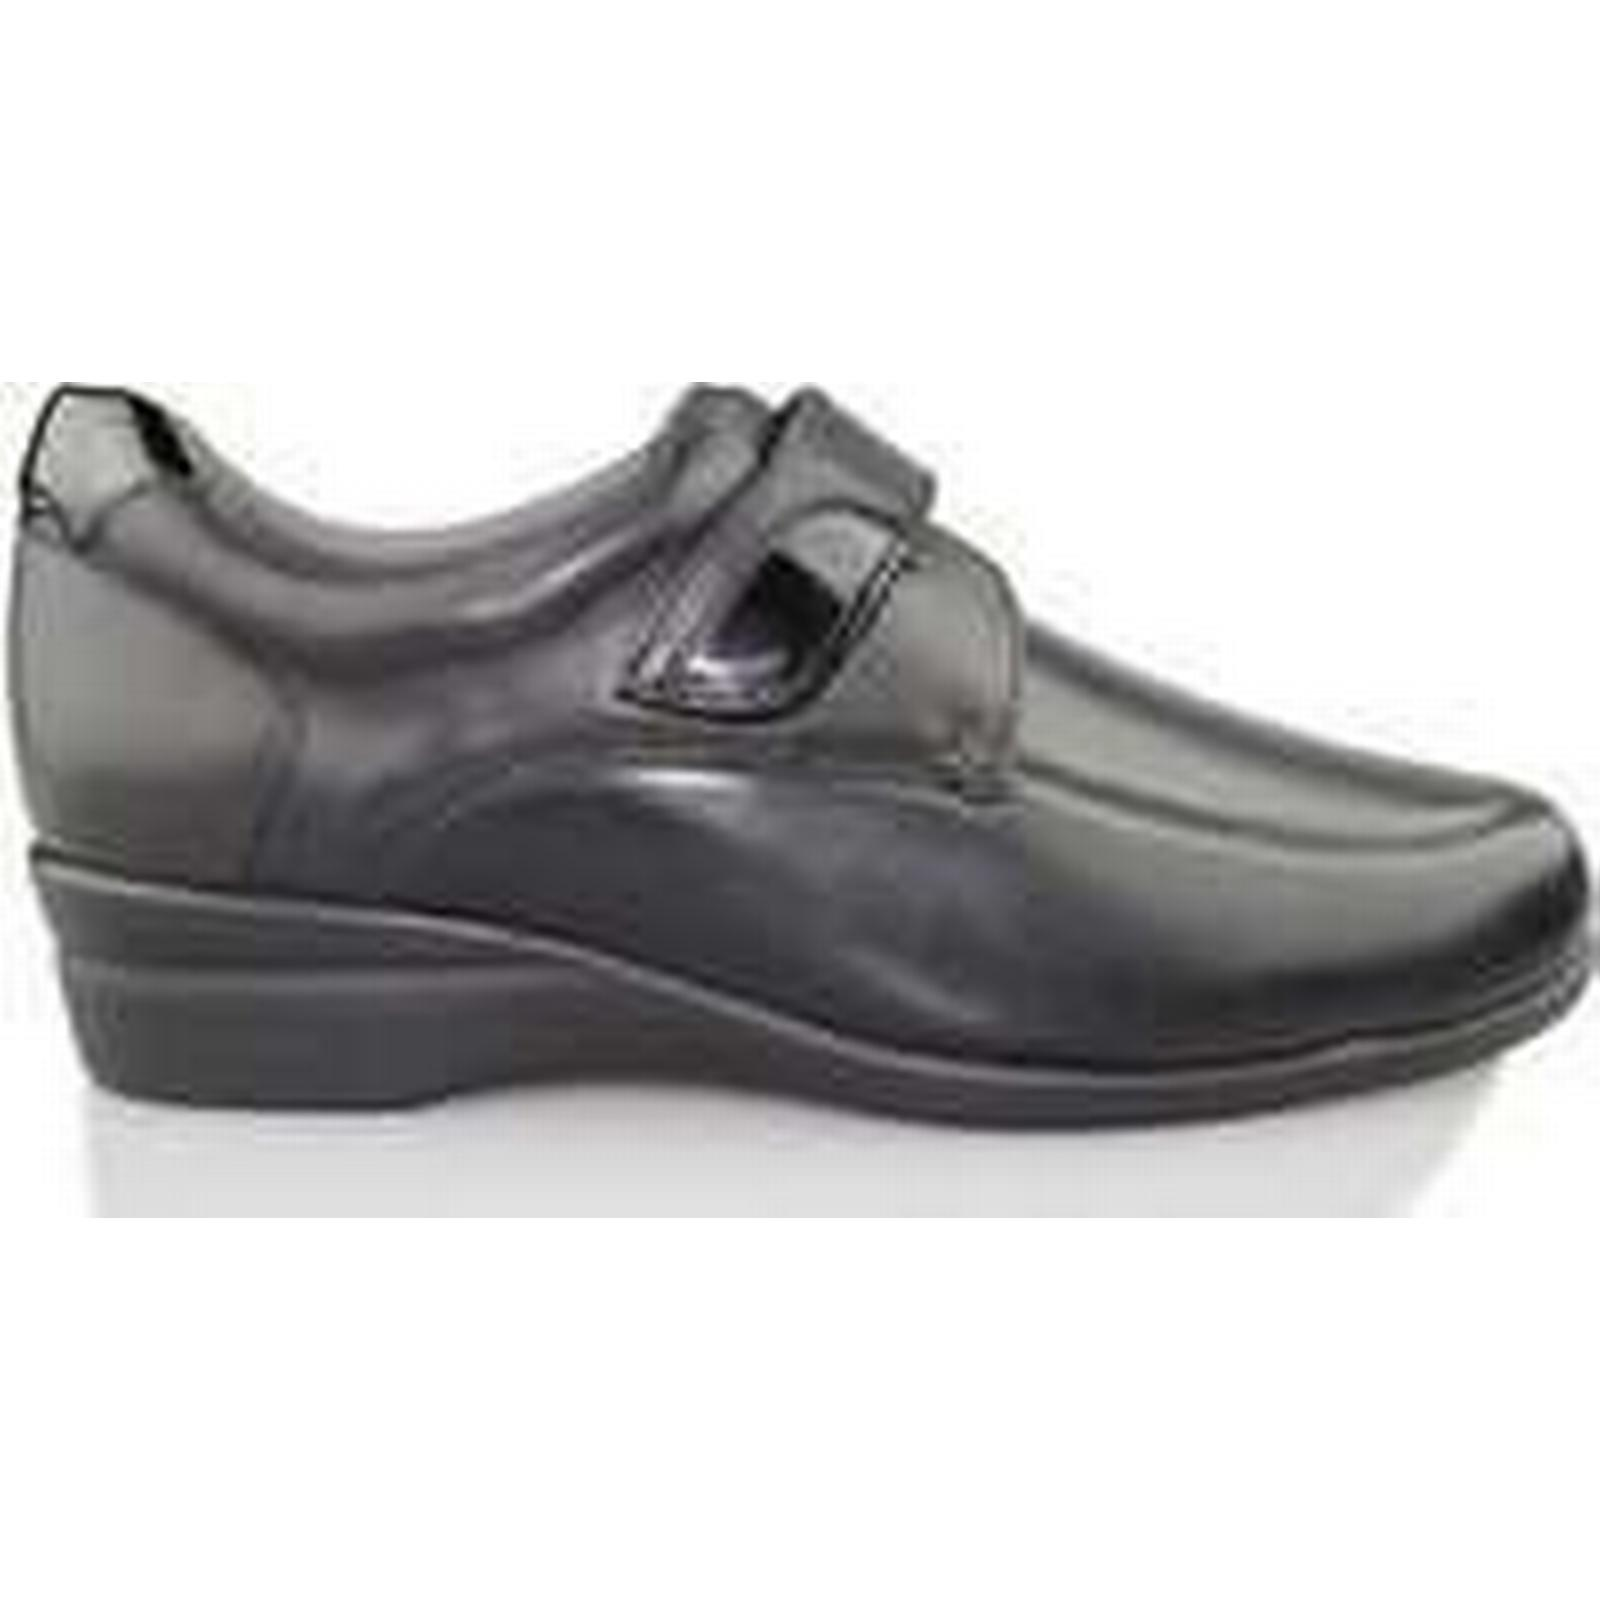 Spartoo.co.uk Dtorres shoes widths for diabetic feet and widths shoes men's Smart / Formal Shoes in Black b506d5